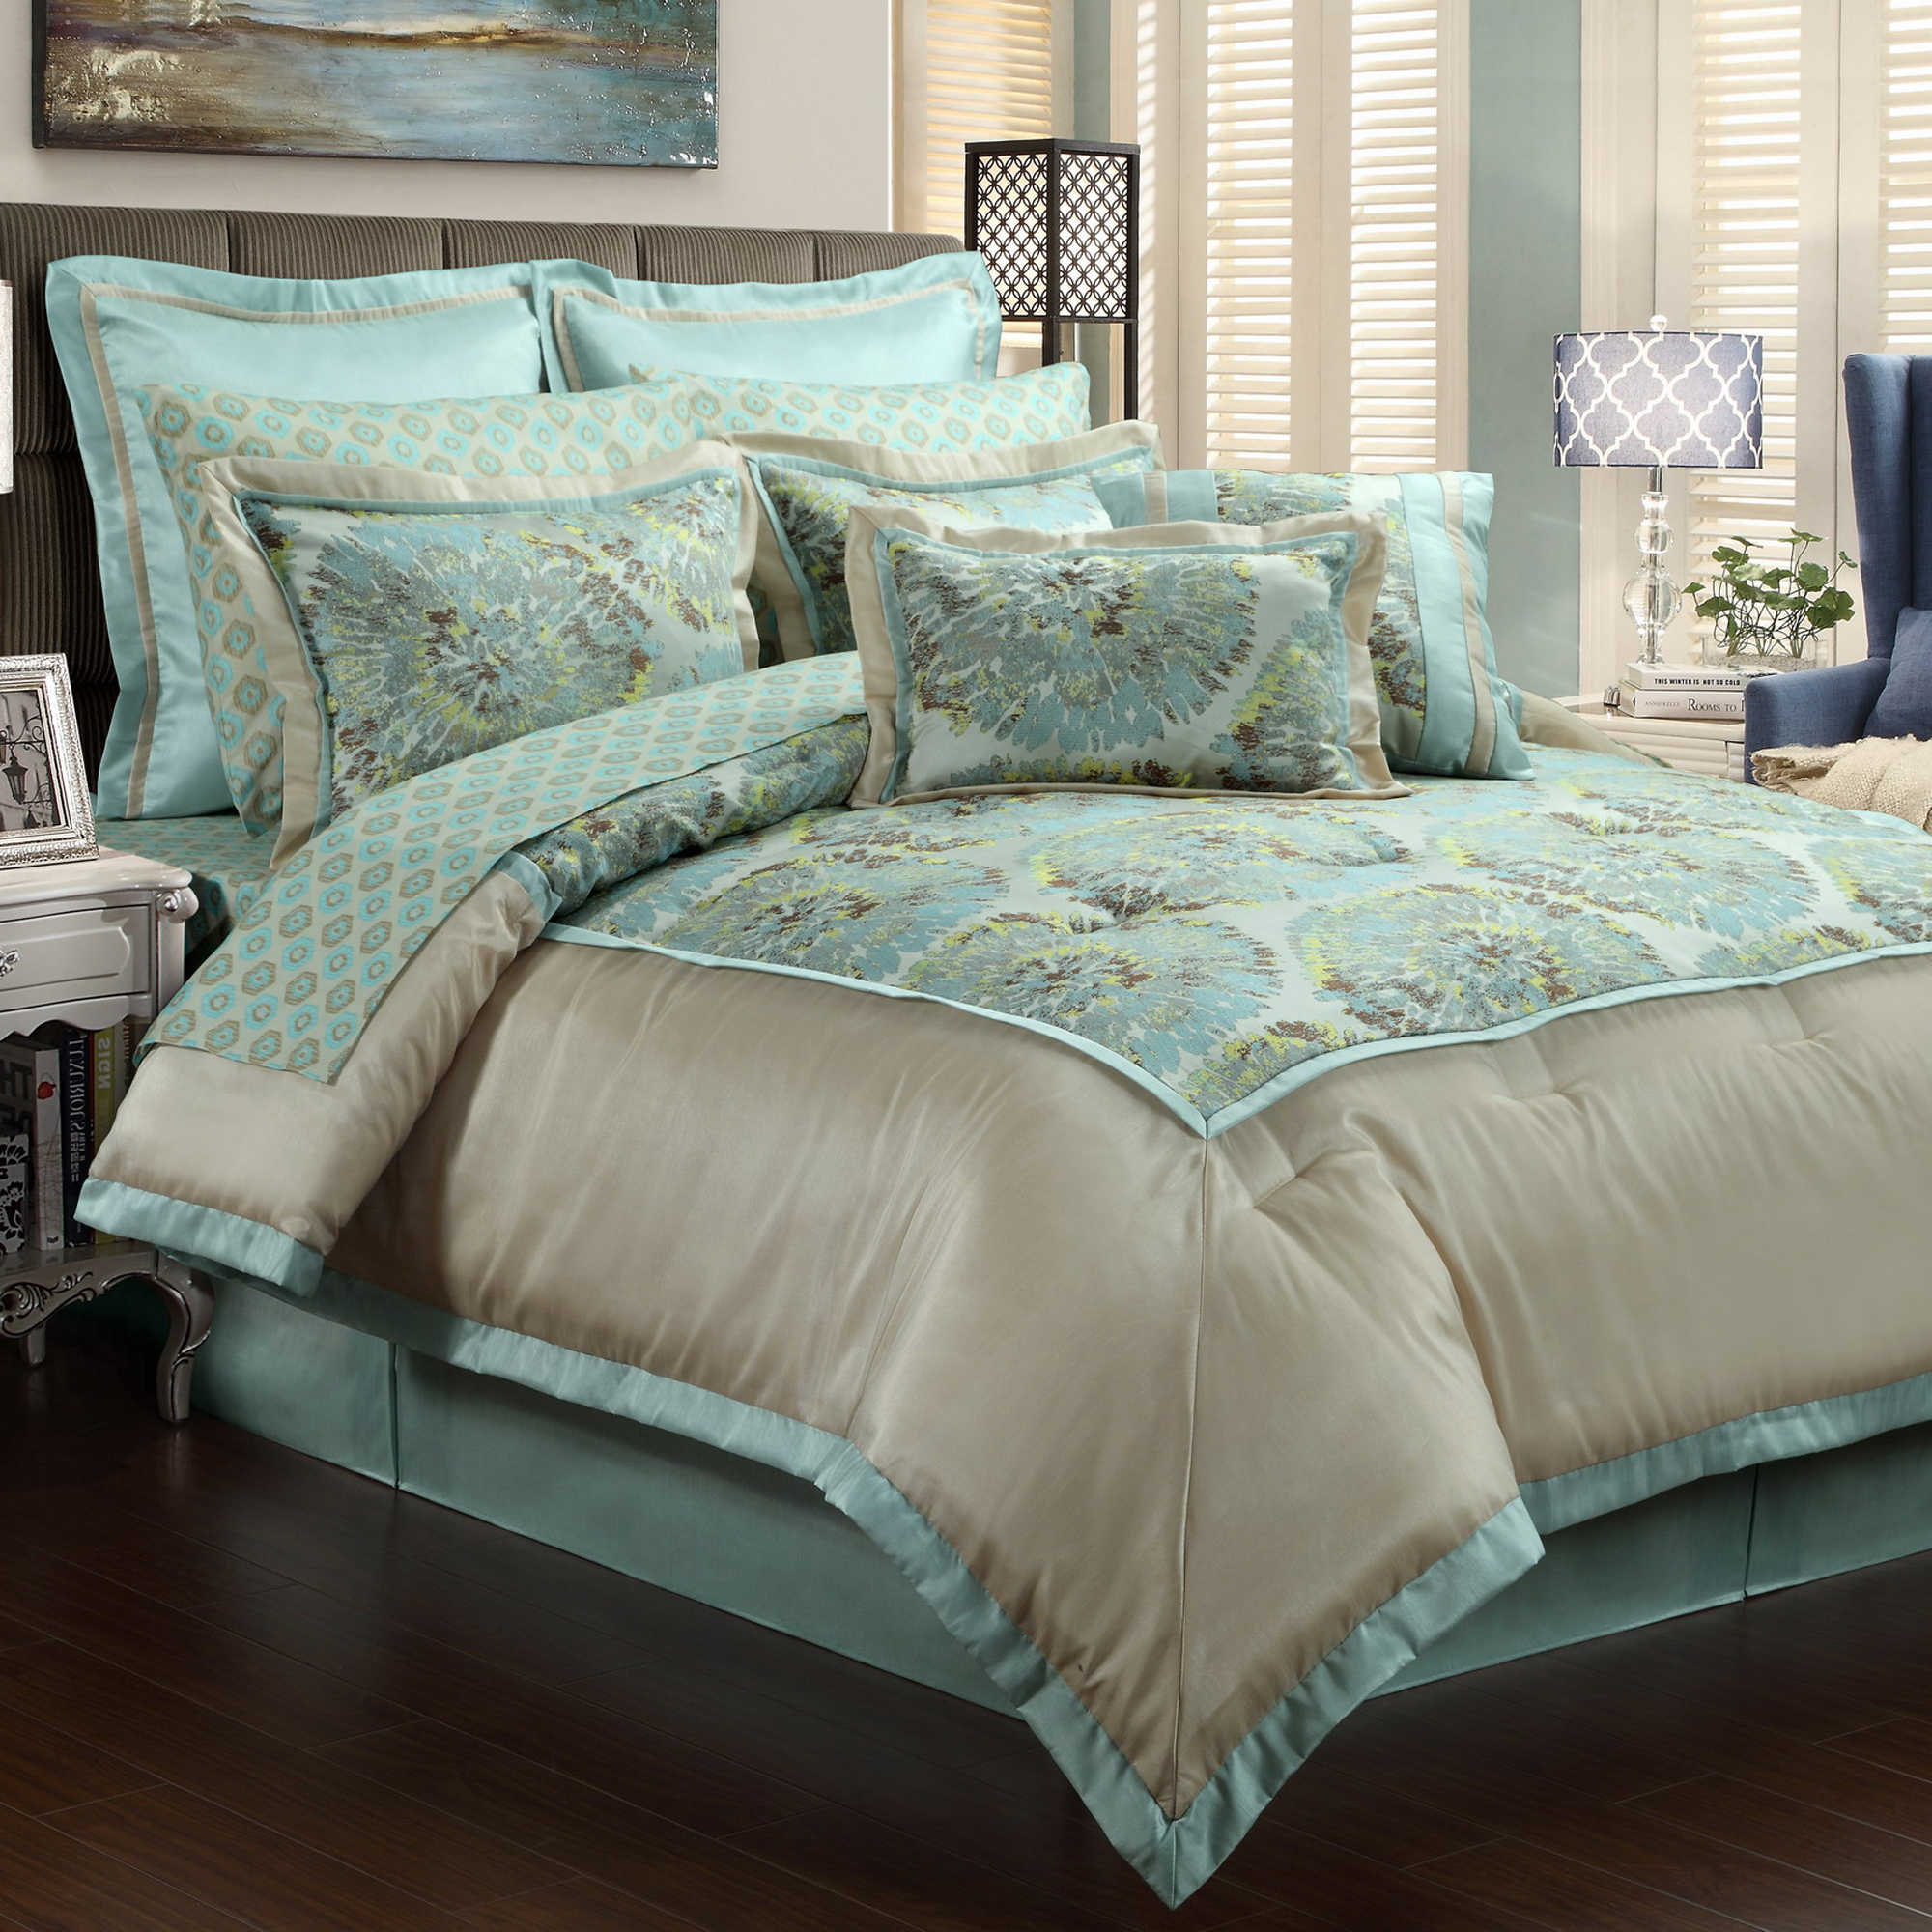 Blue Fl Of Cool Comforter Sets On Bed And Pillows